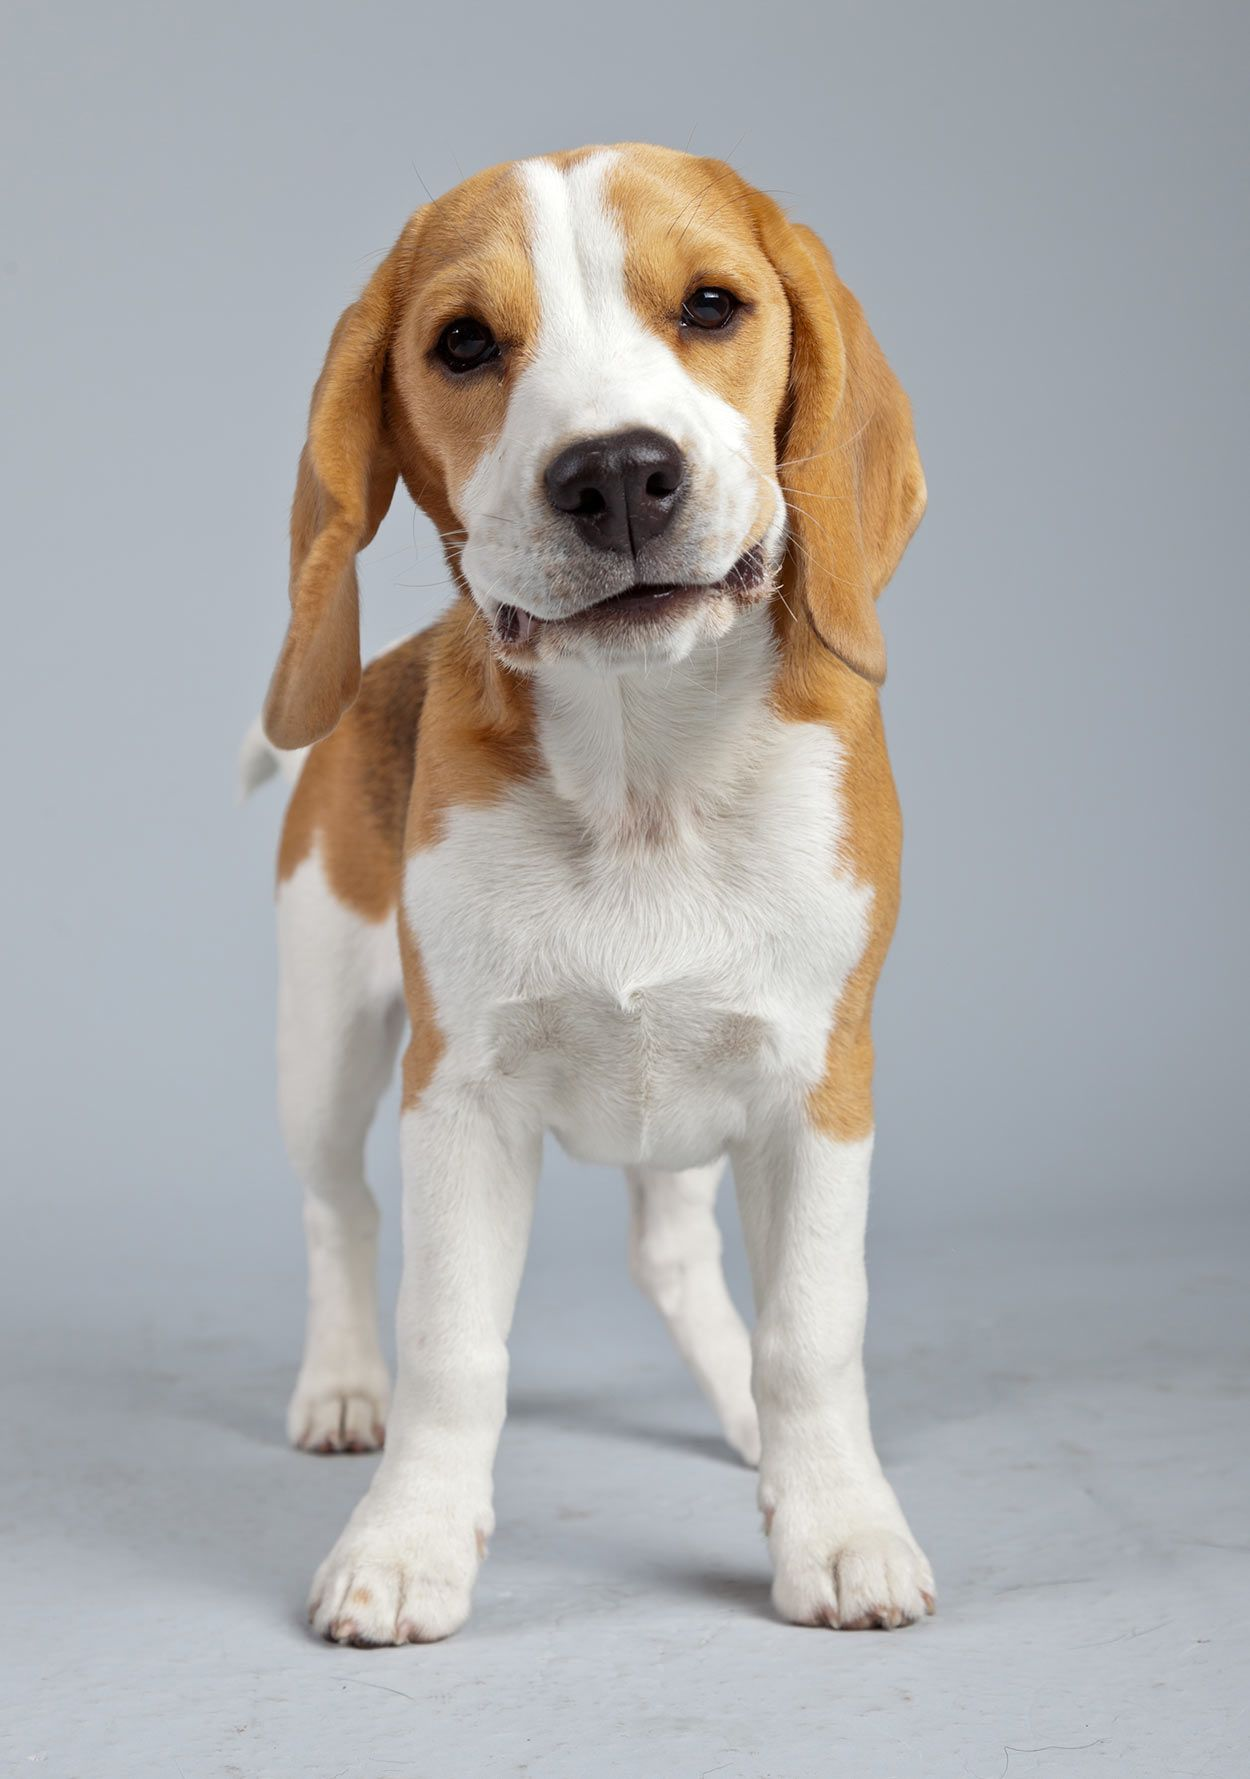 25 Fascinating Lemon Beagle Facts Beagle Puppy Lemon Beagle